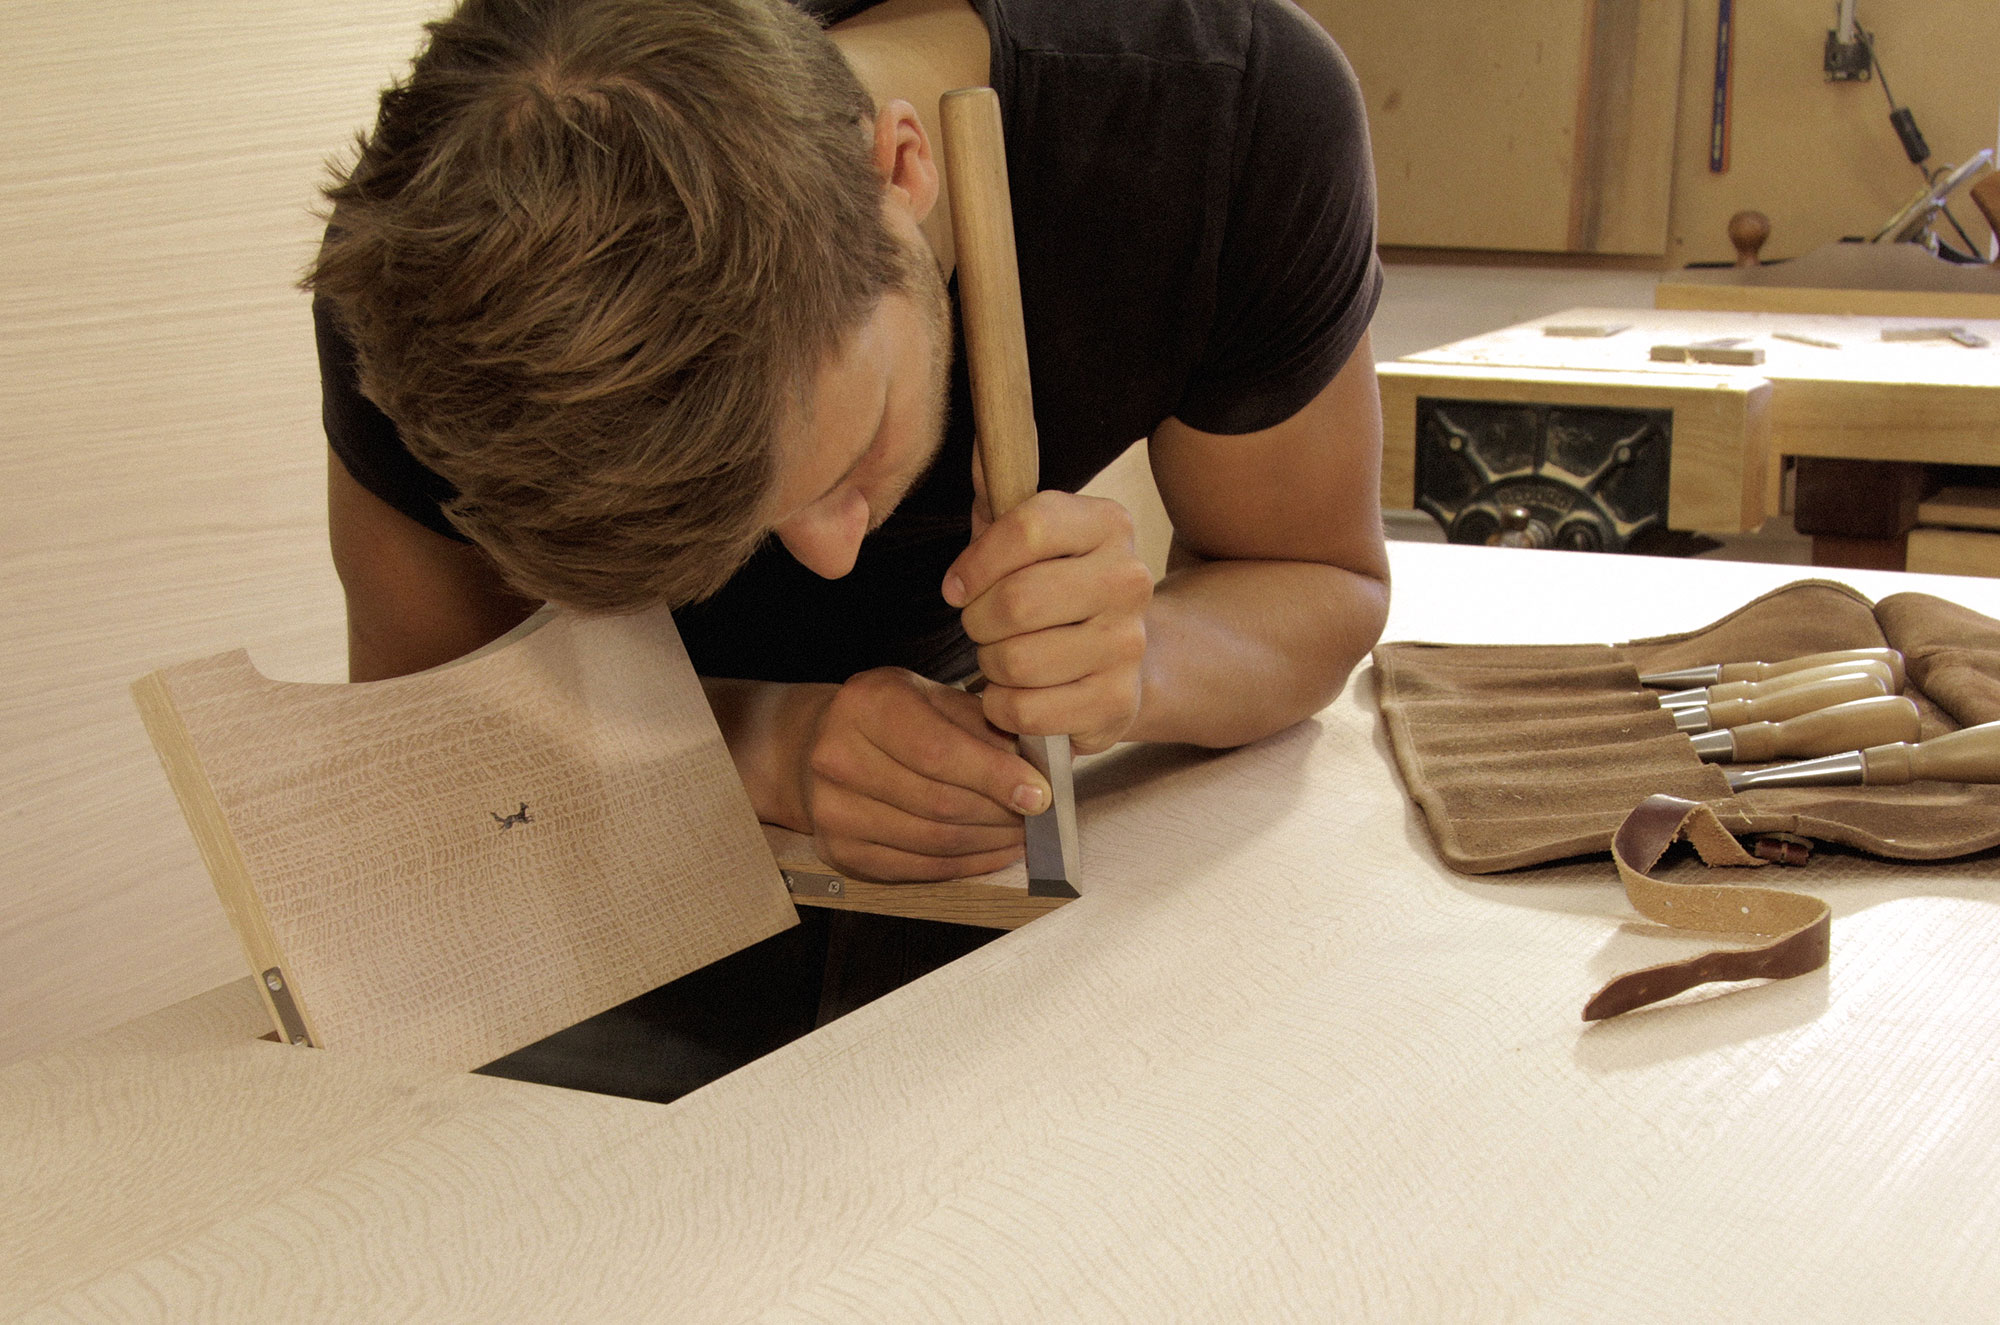 Finest materials are chosen for the making of high end commercial furniture by hand